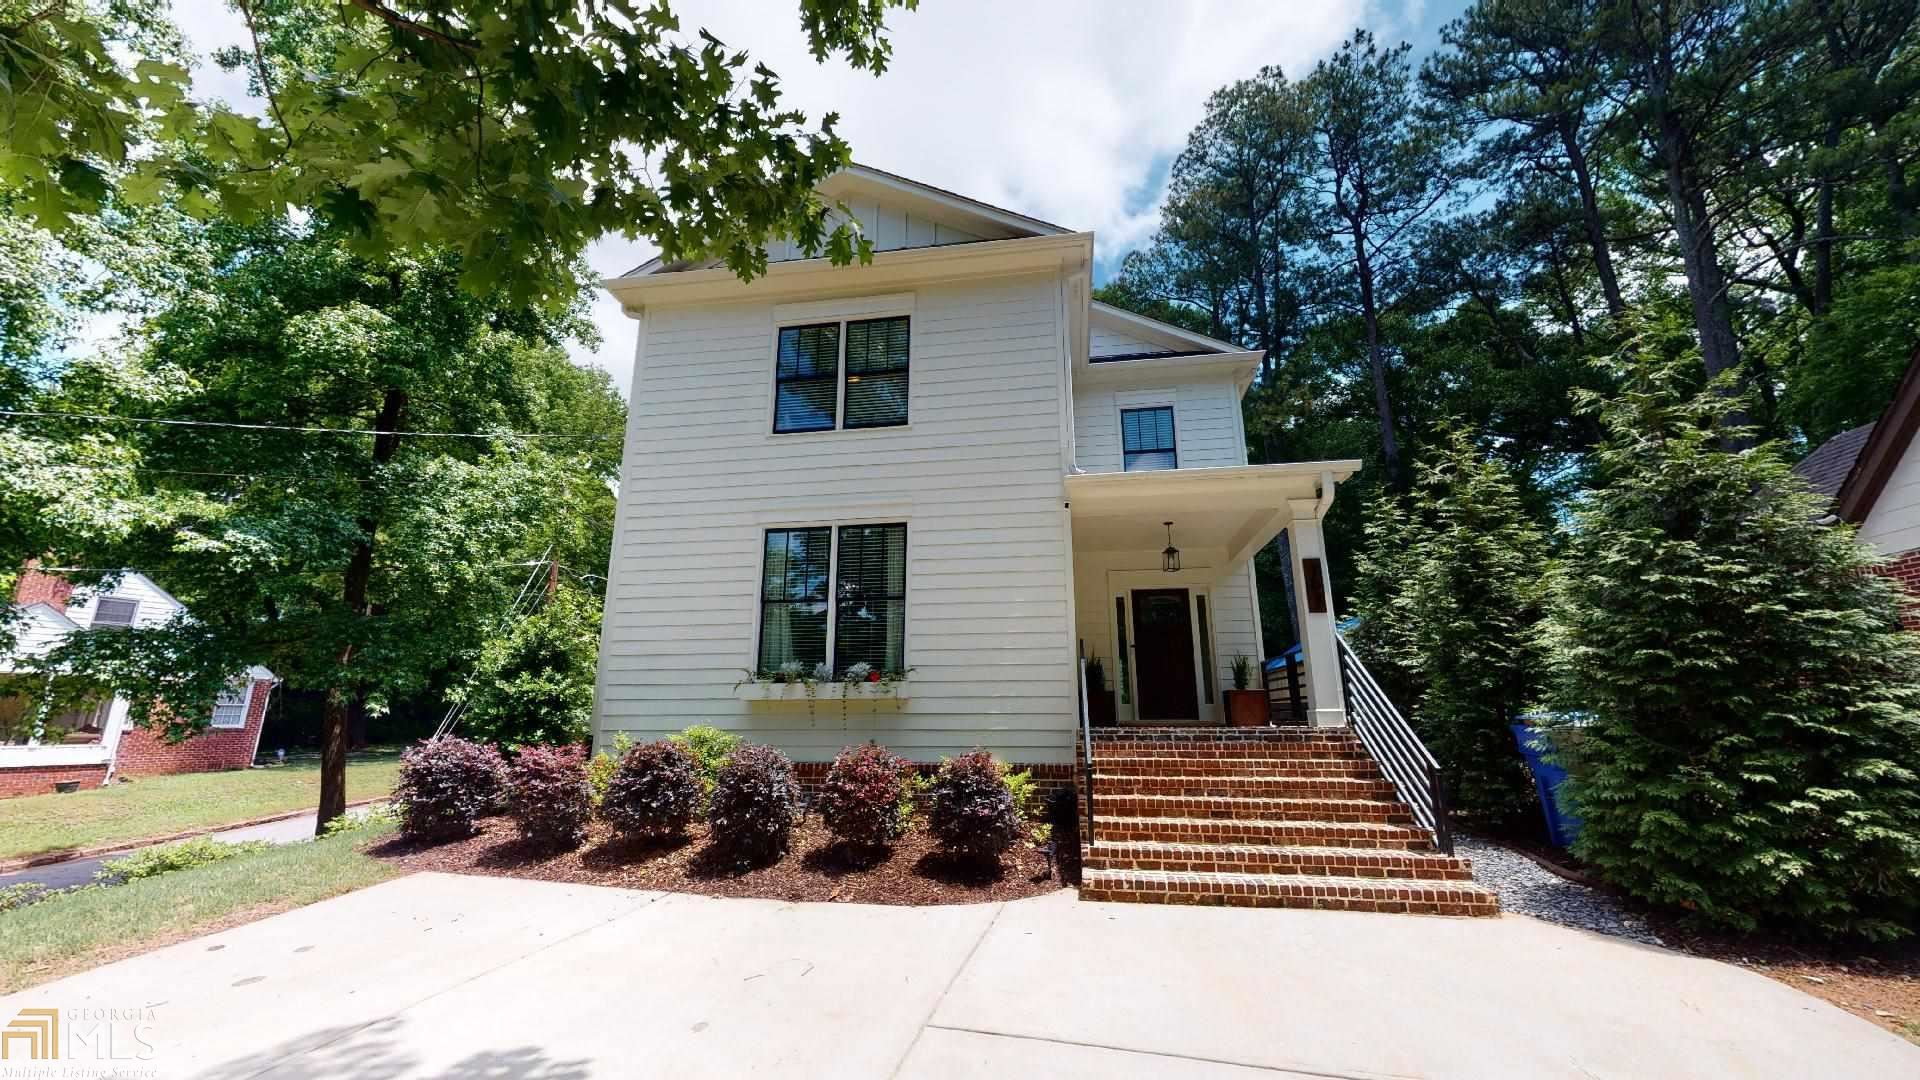 702 Stokeswood Ave, Atlanta, GA 30316 - #: 8788842